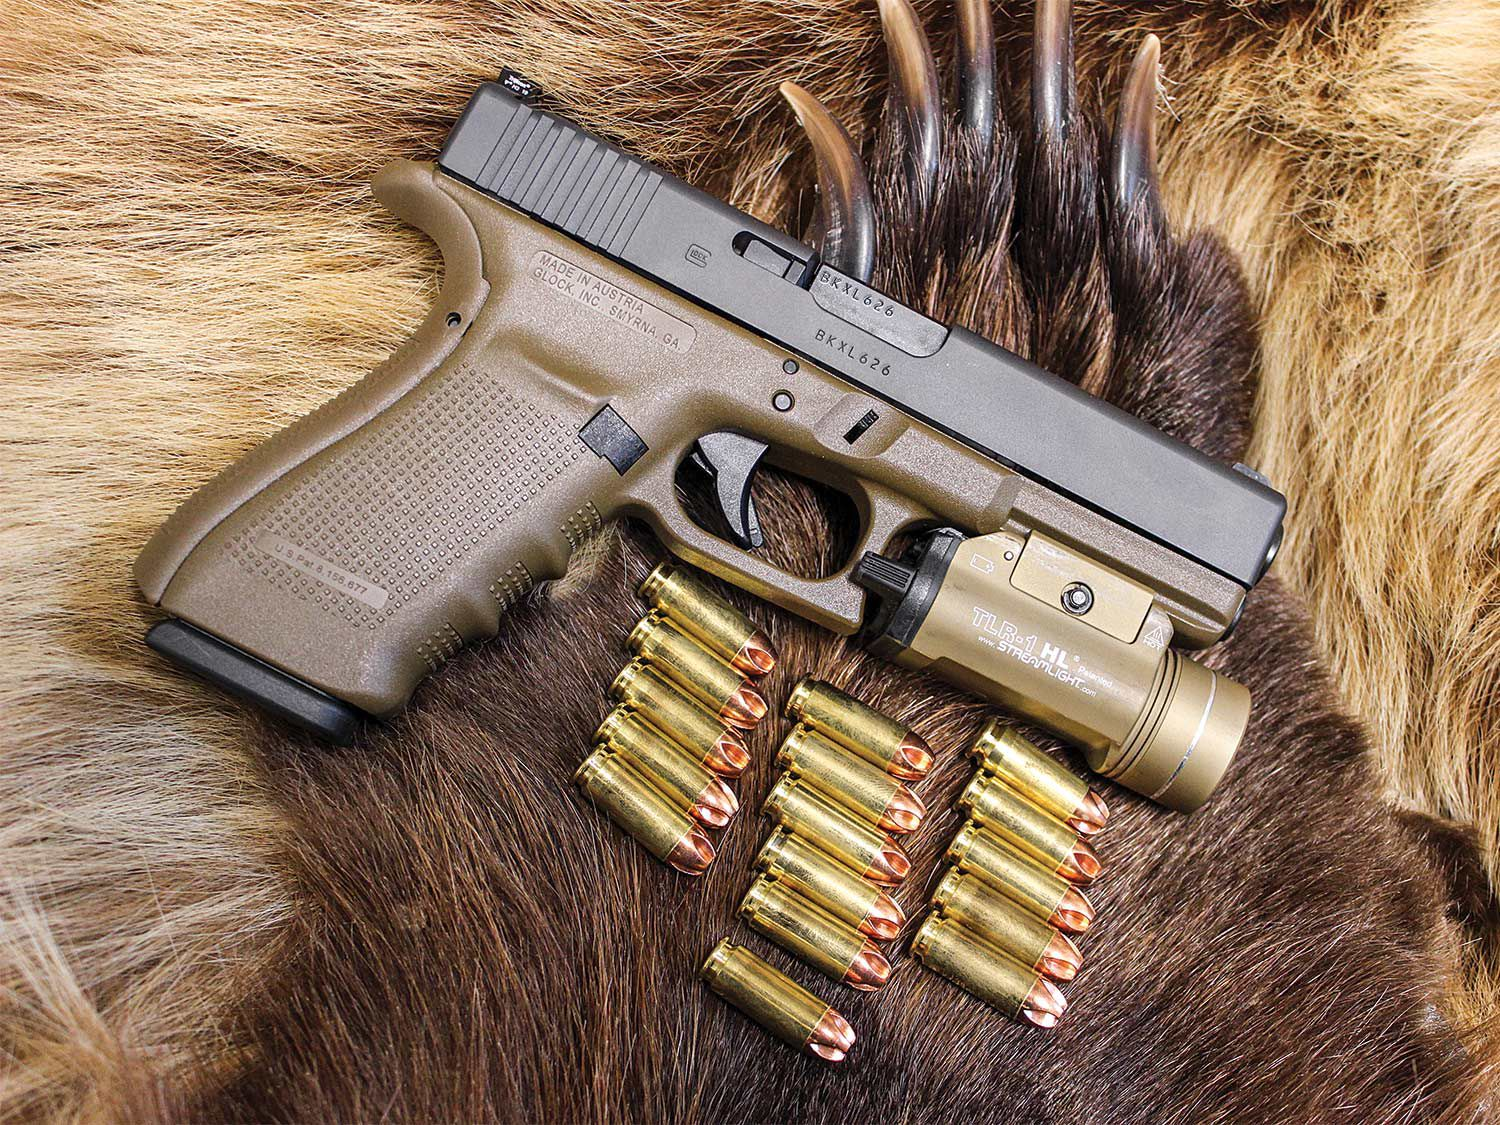 What's the Best Back Up Bear Gun: A Magnum Revolver or a